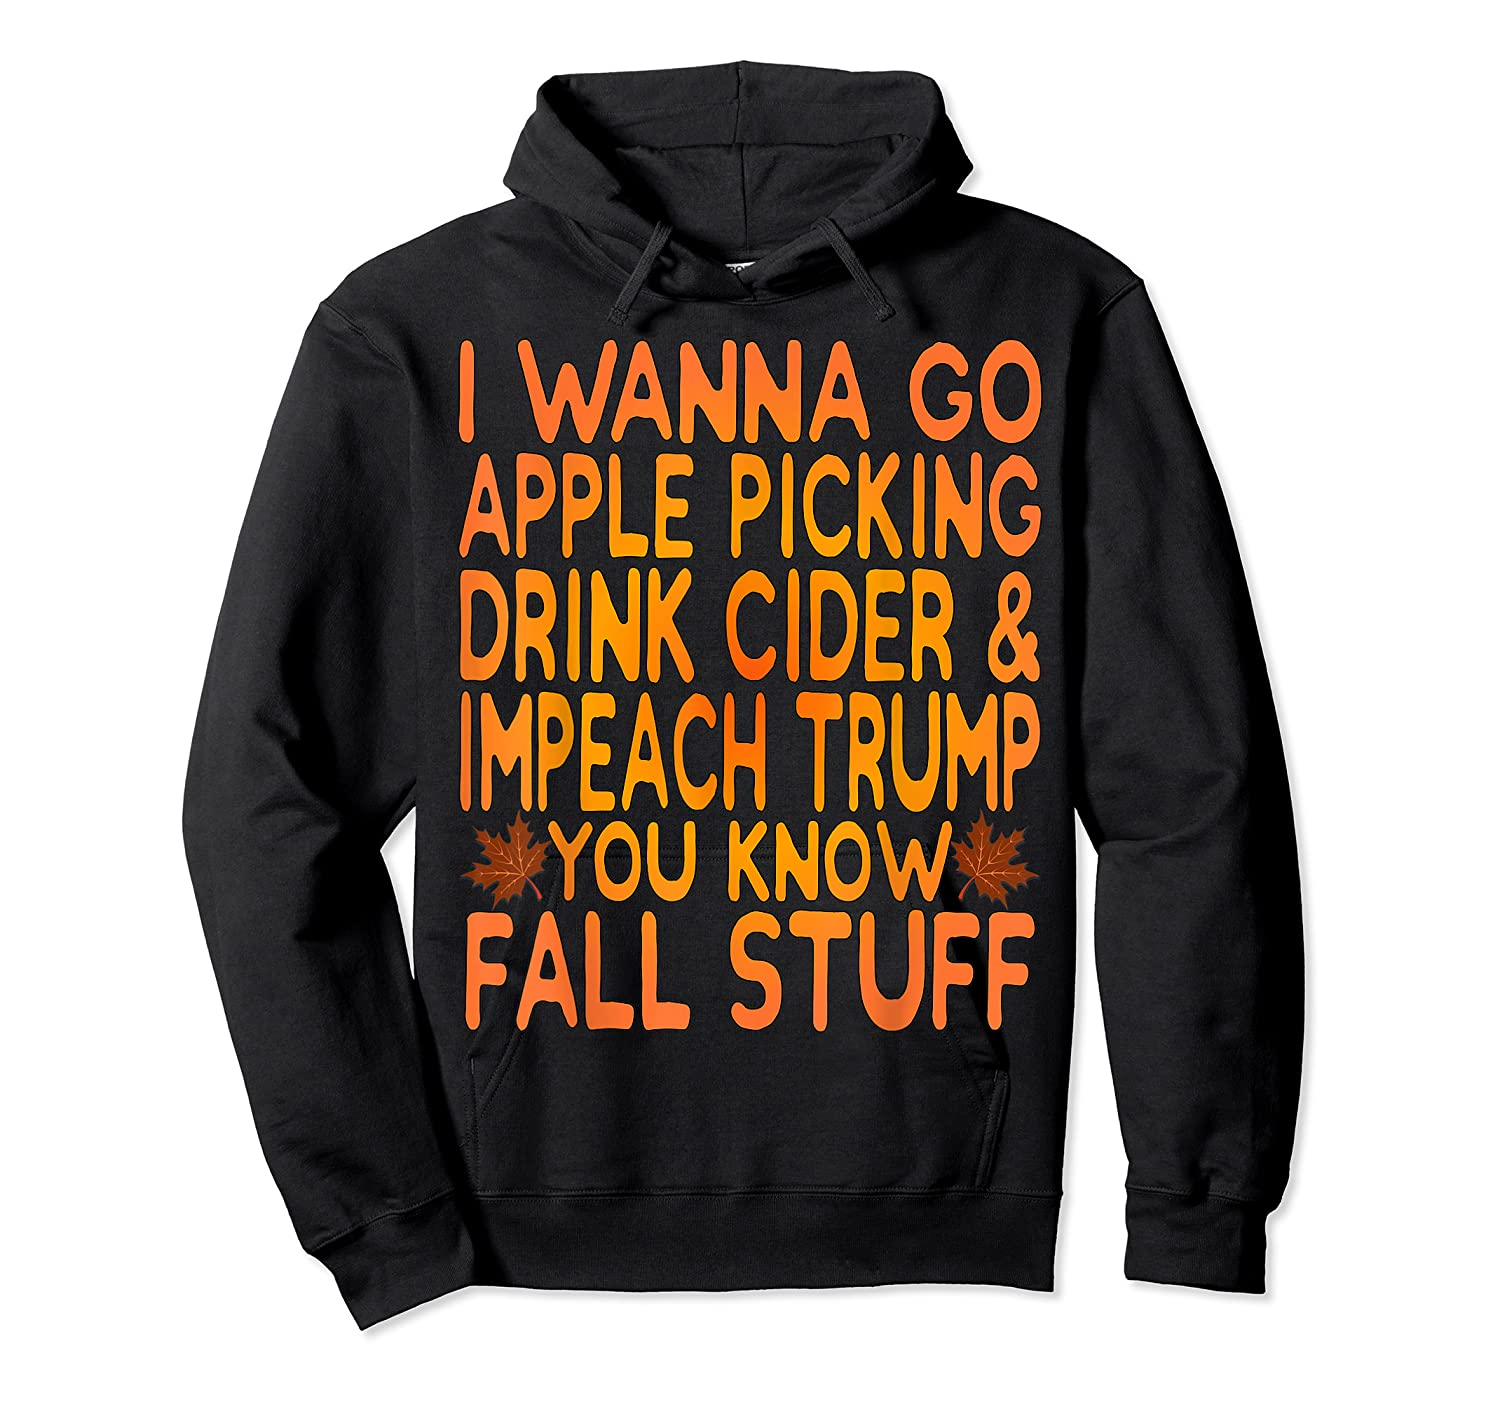 Apple Picking Cider Drinking And Impeach Trump This Fall T Shirt Unisex Pullover Hoodie